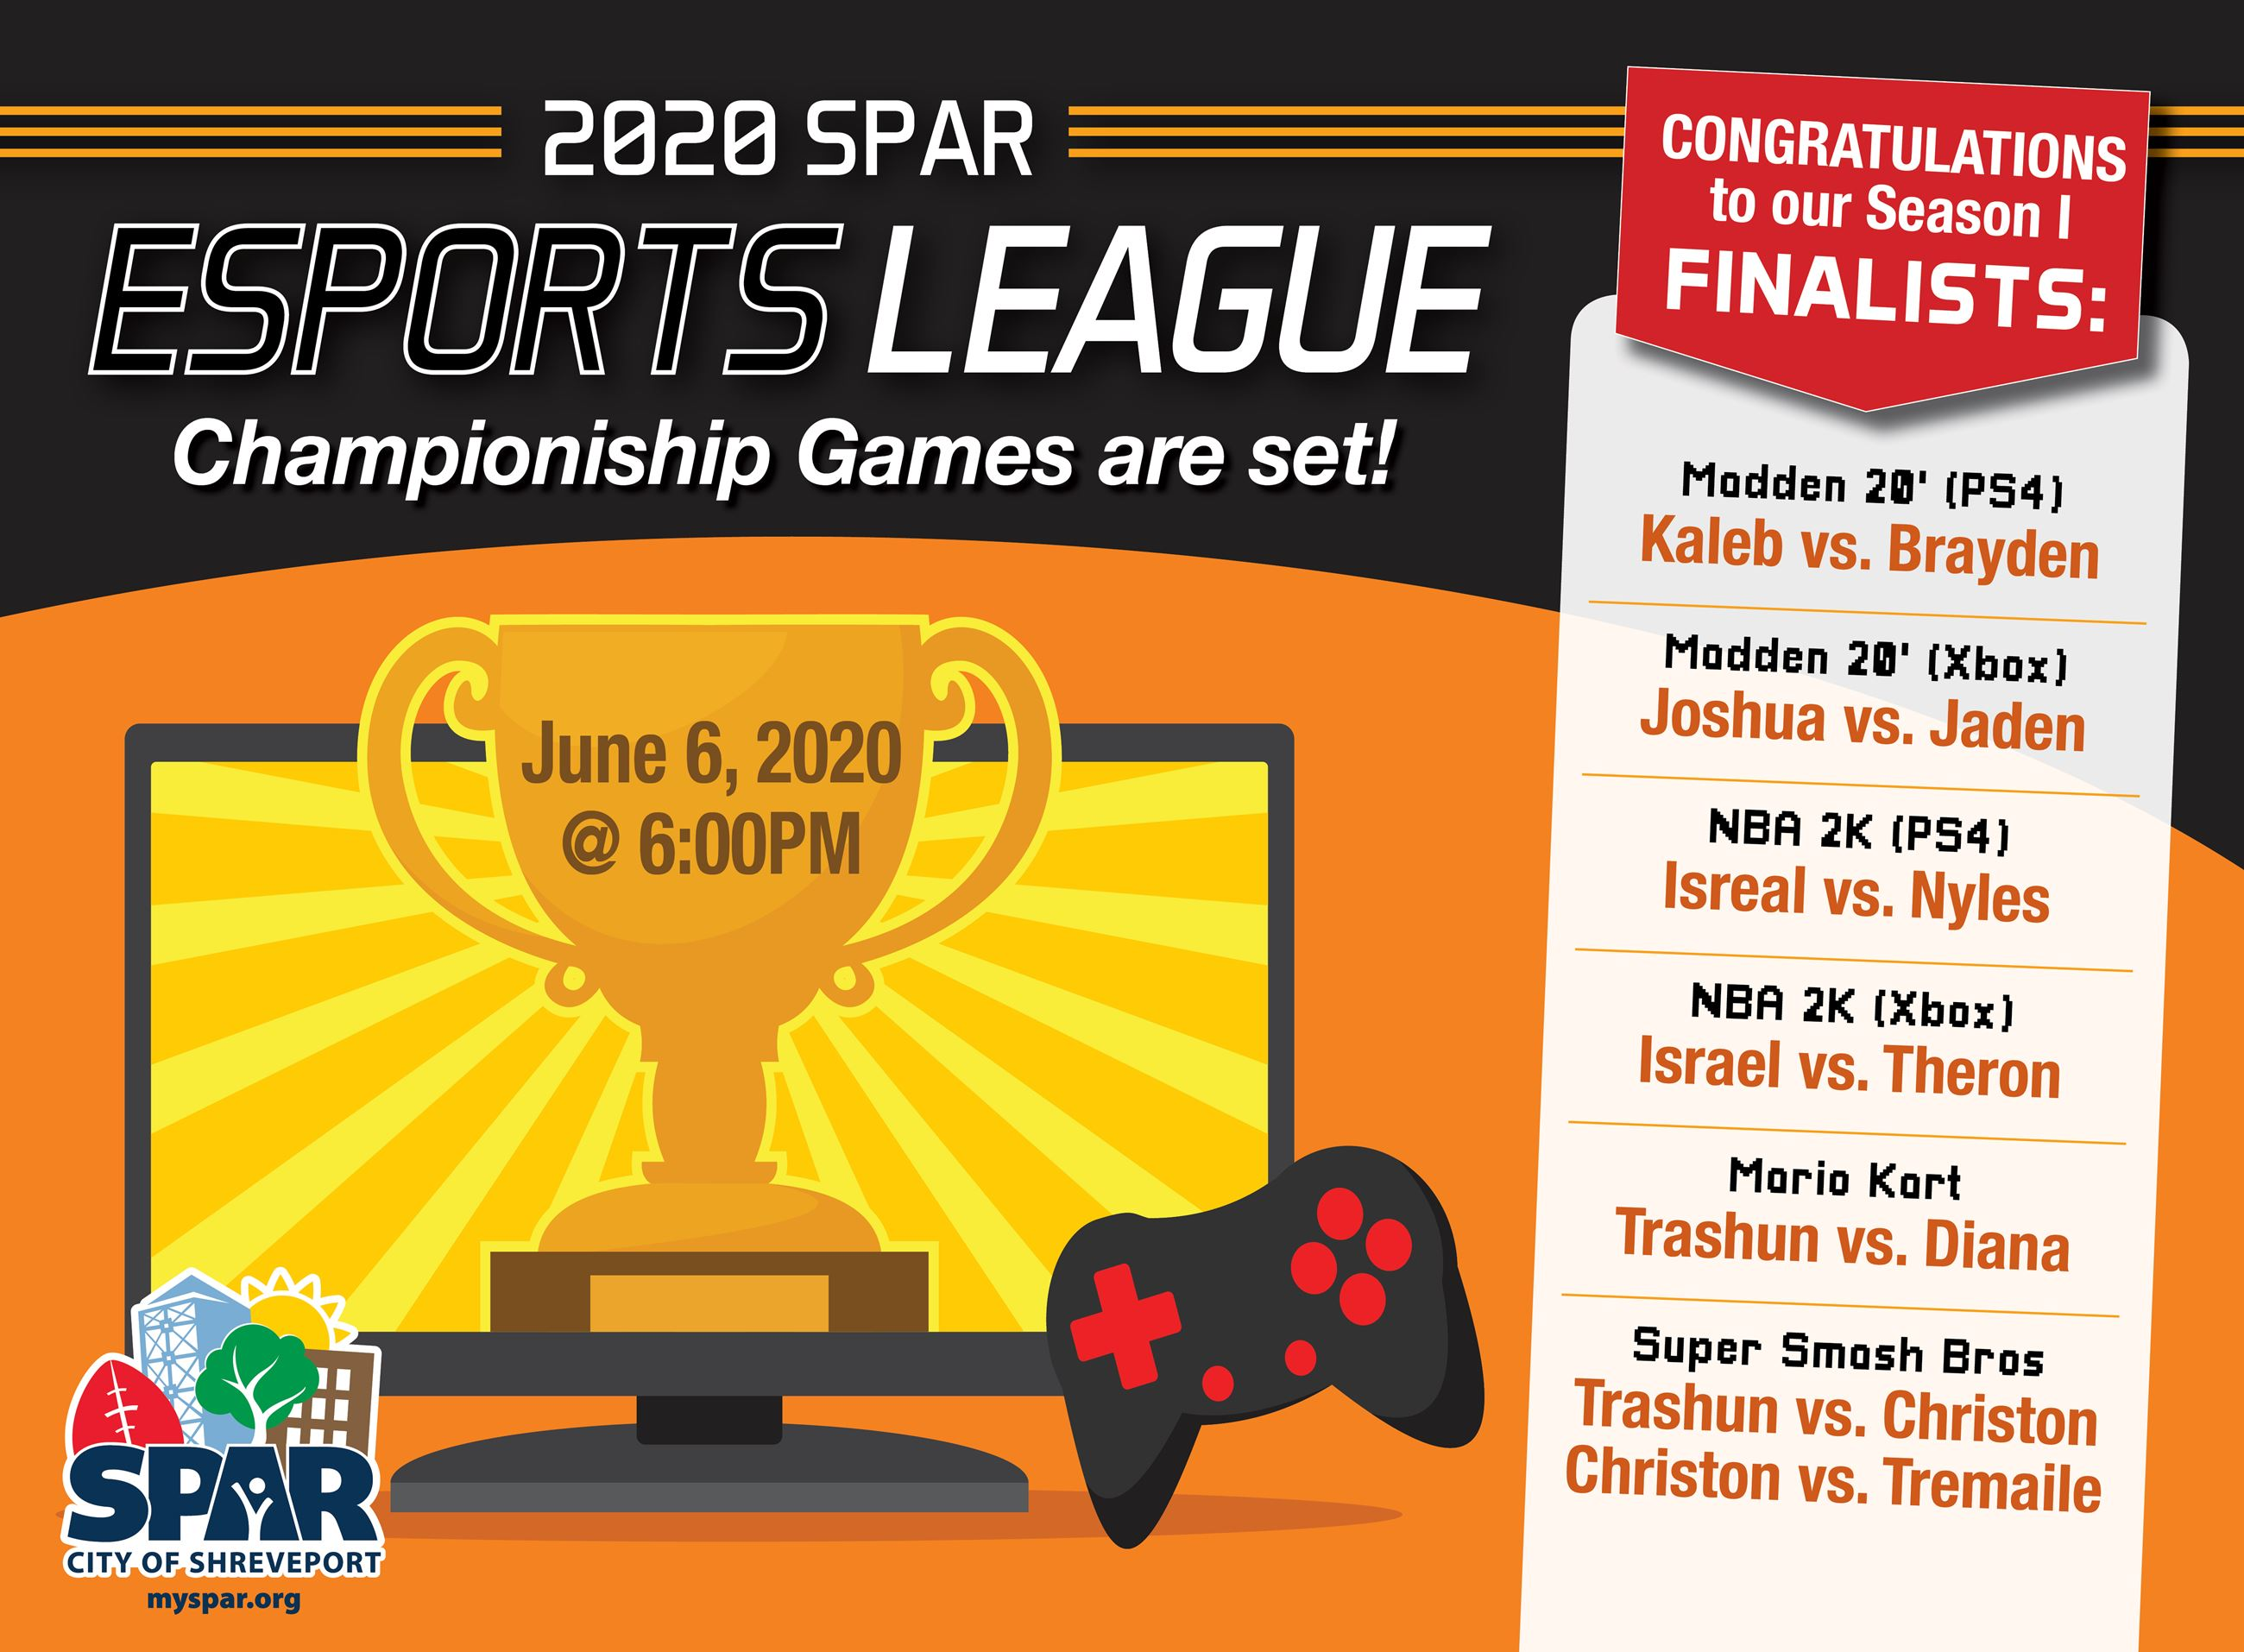 2020 Esports League Finalists